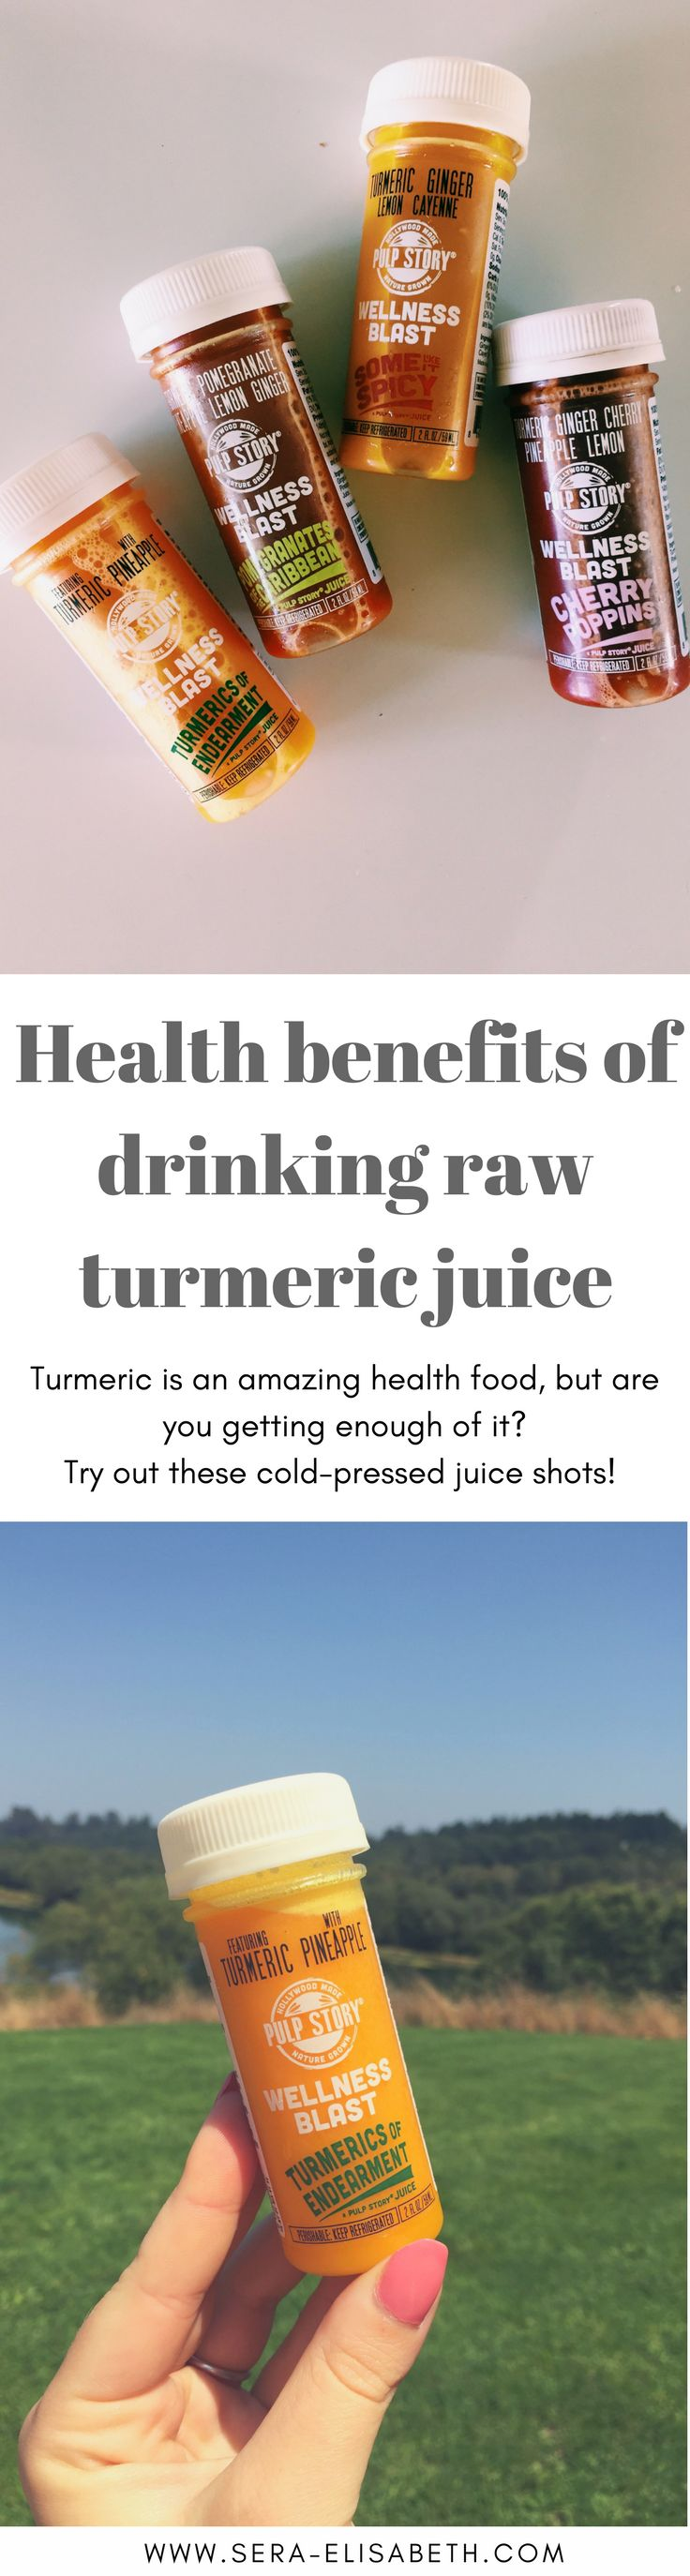 Turmeric might be the answer to your health woes - did you know it was so powerful? | cold pressed turmeric juice | turmeric for health | turmeric for wellness | anti-inflammatory | juicing benefits | ginger and turmeric for immune support | healthy juice | juice shots | wellness supplements | why drinking raw turmeric juice is a good idea | raw turmeric | health benefits of raw turmeric root | Ayurvedic medicine | holistic wellness | nutrition | Sera Elisabeth